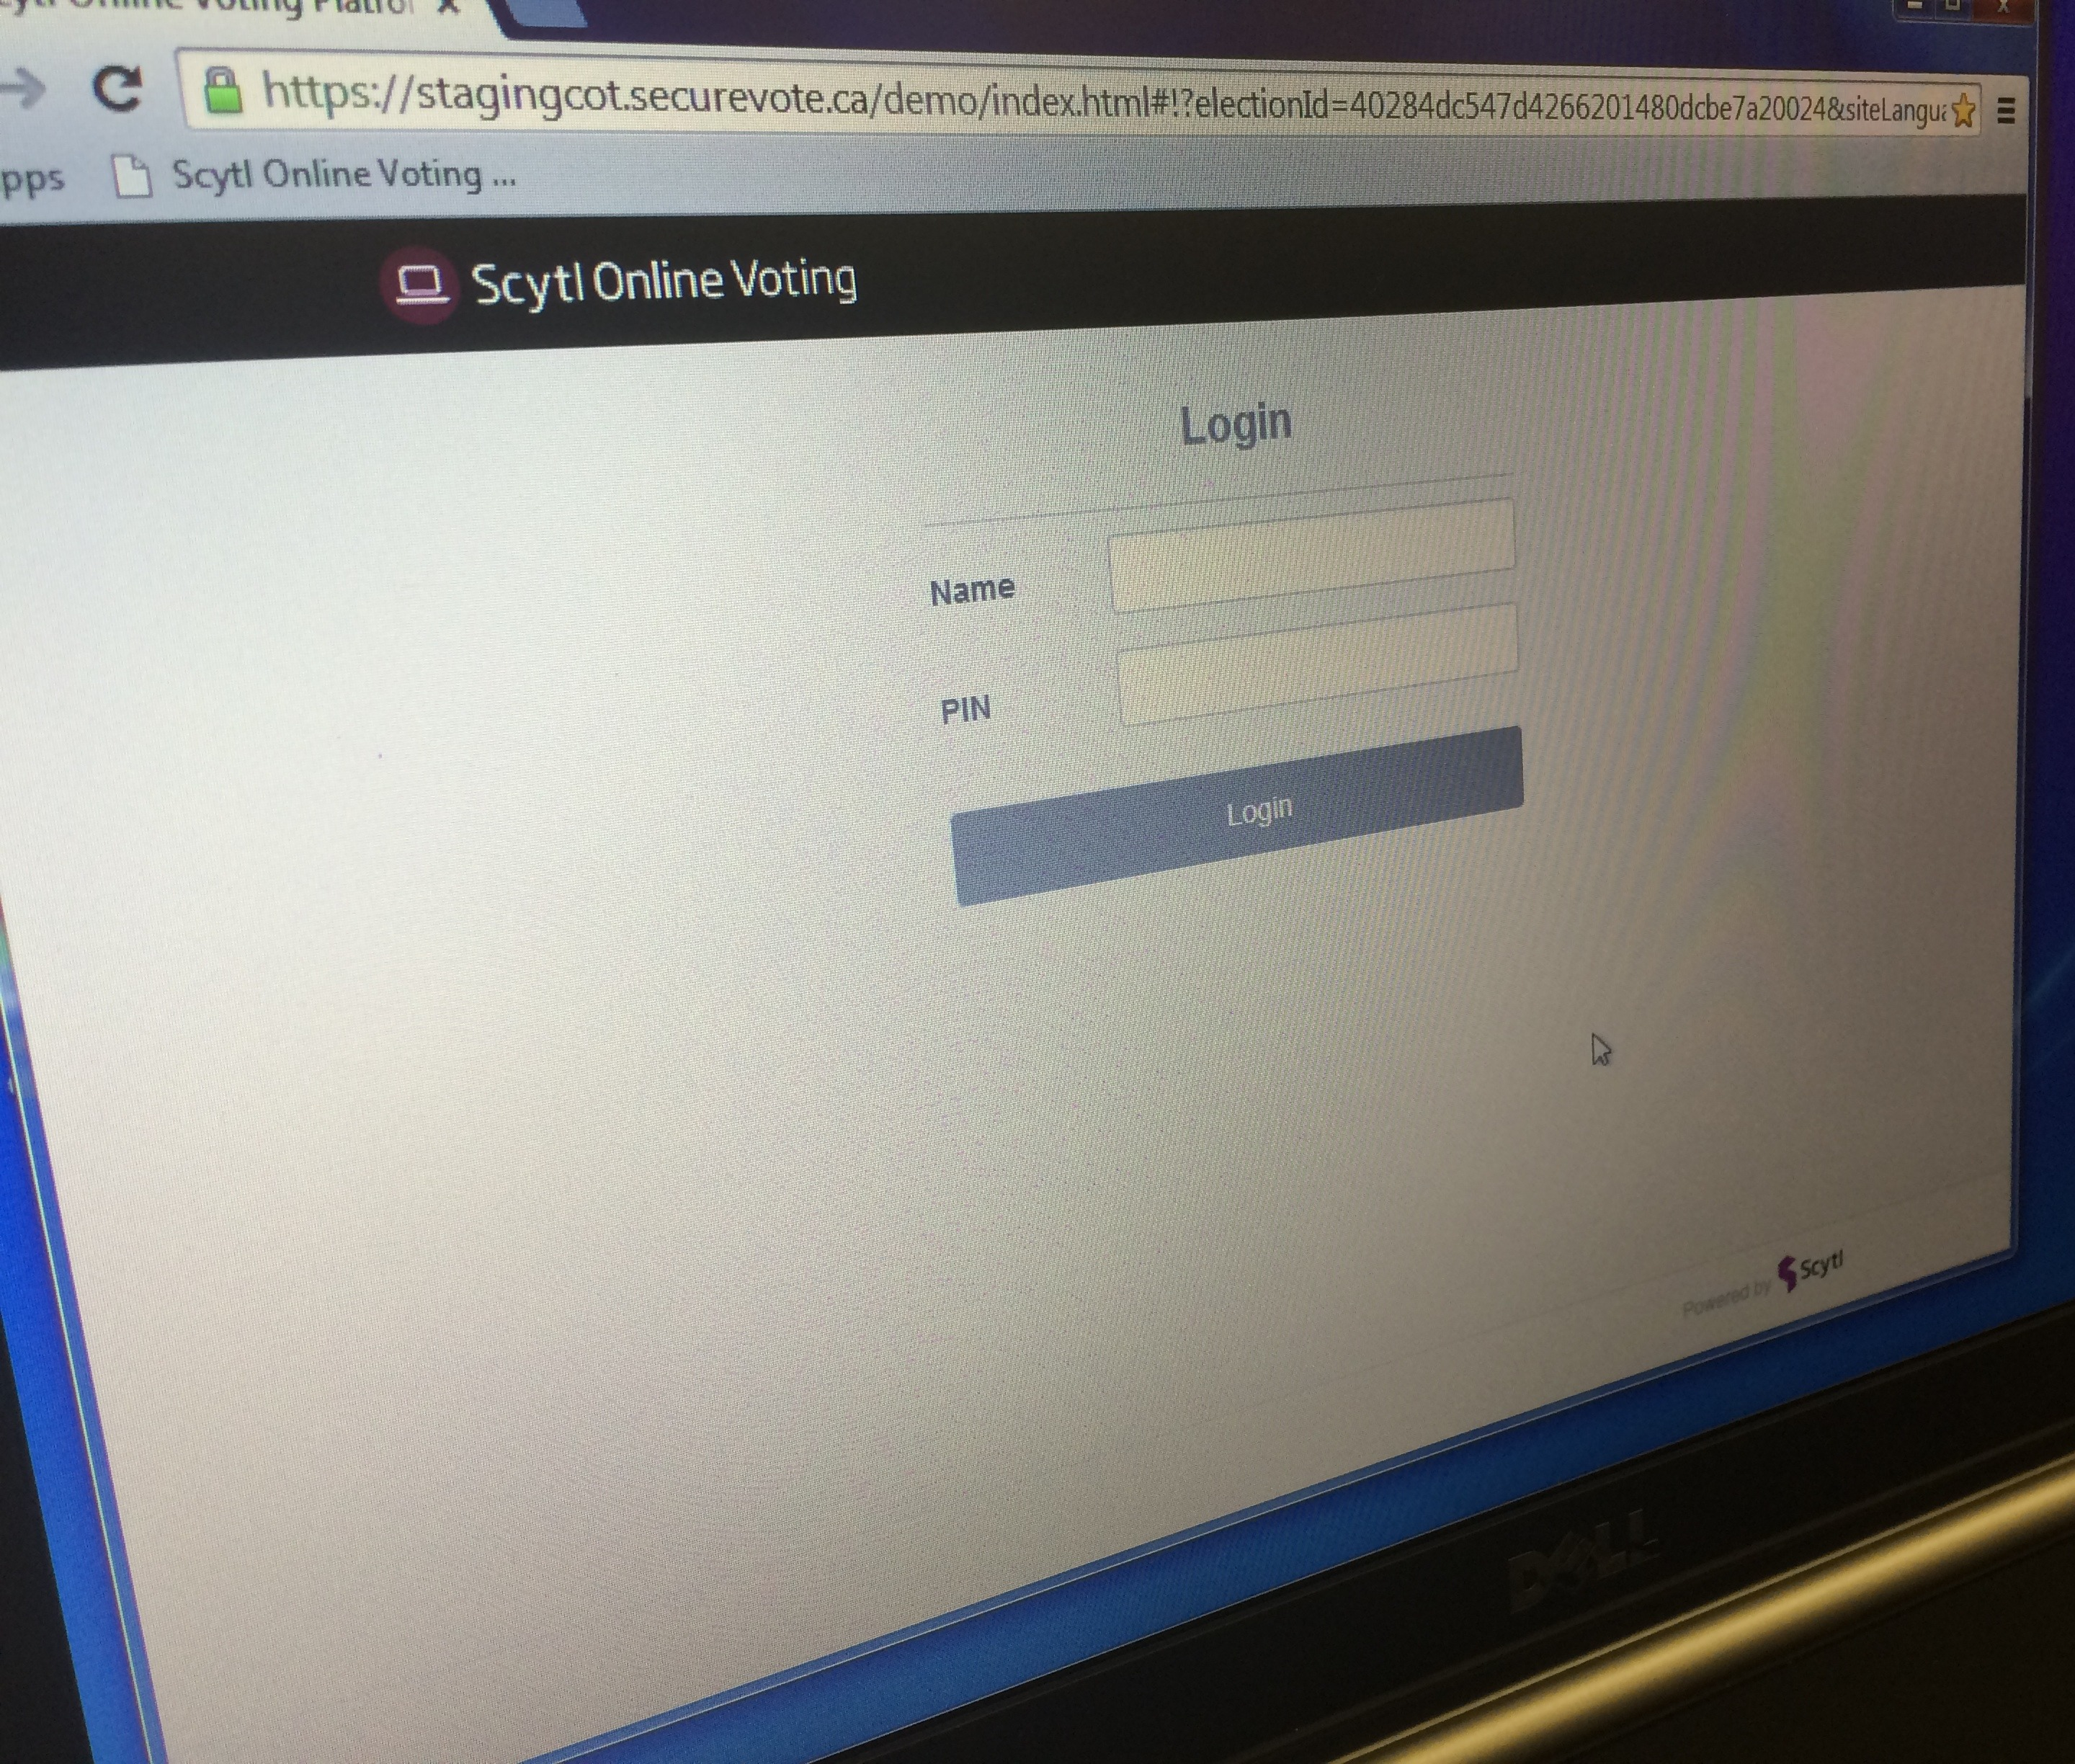 The start-up page of the online voting system Leamington will use in the upcoming 2014 municipal election is seen during a demonstration of the system at the Leamington Municipal Building on August 27, 2014. (Photo by Ricardo Veneza)